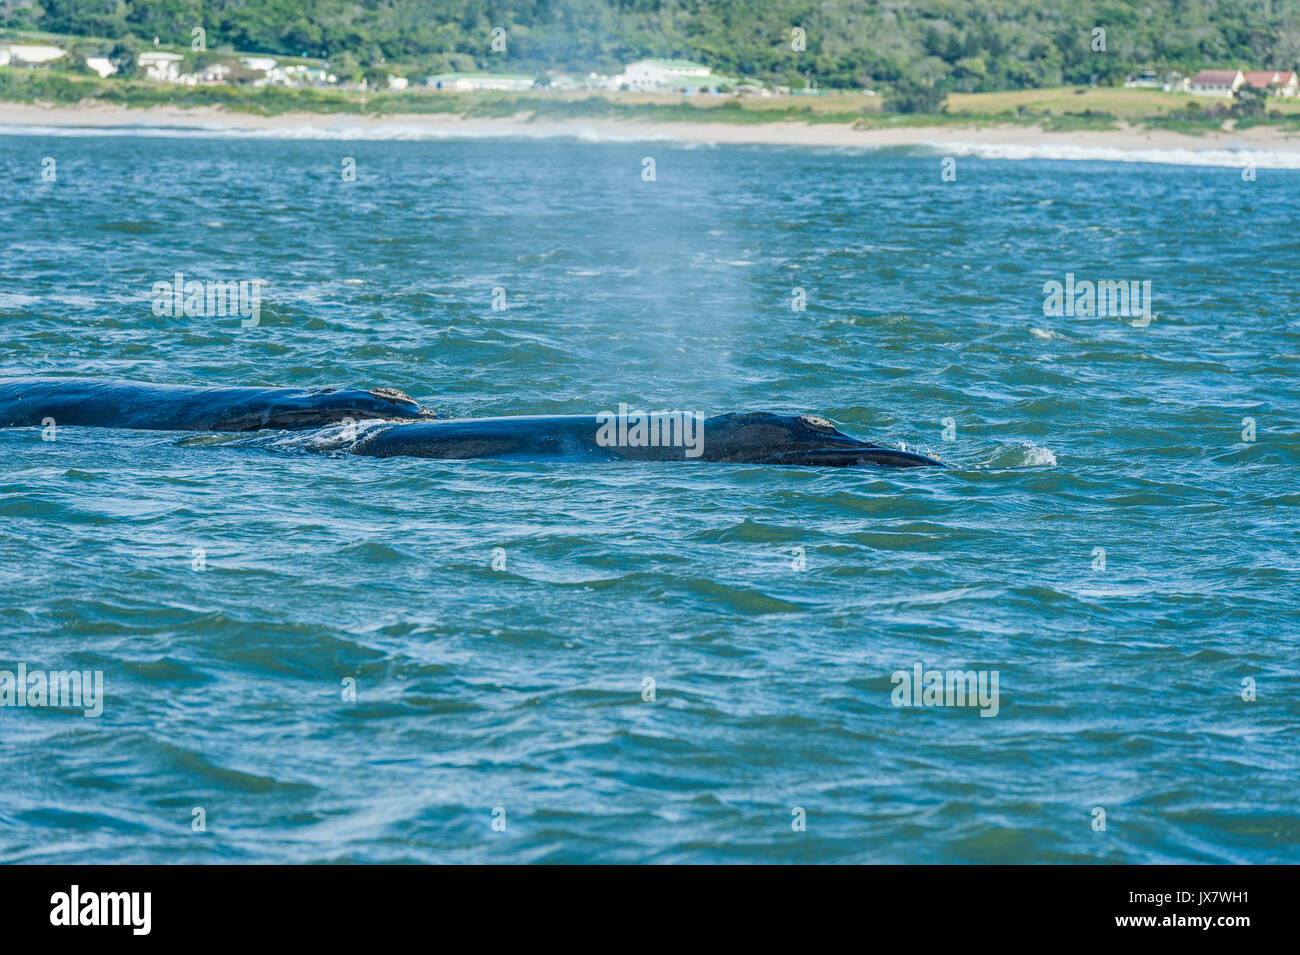 Southern Right Whale, Eubalaena australis, in Plettenberg Bay at Plettenberg, South Africa. Stock Photo